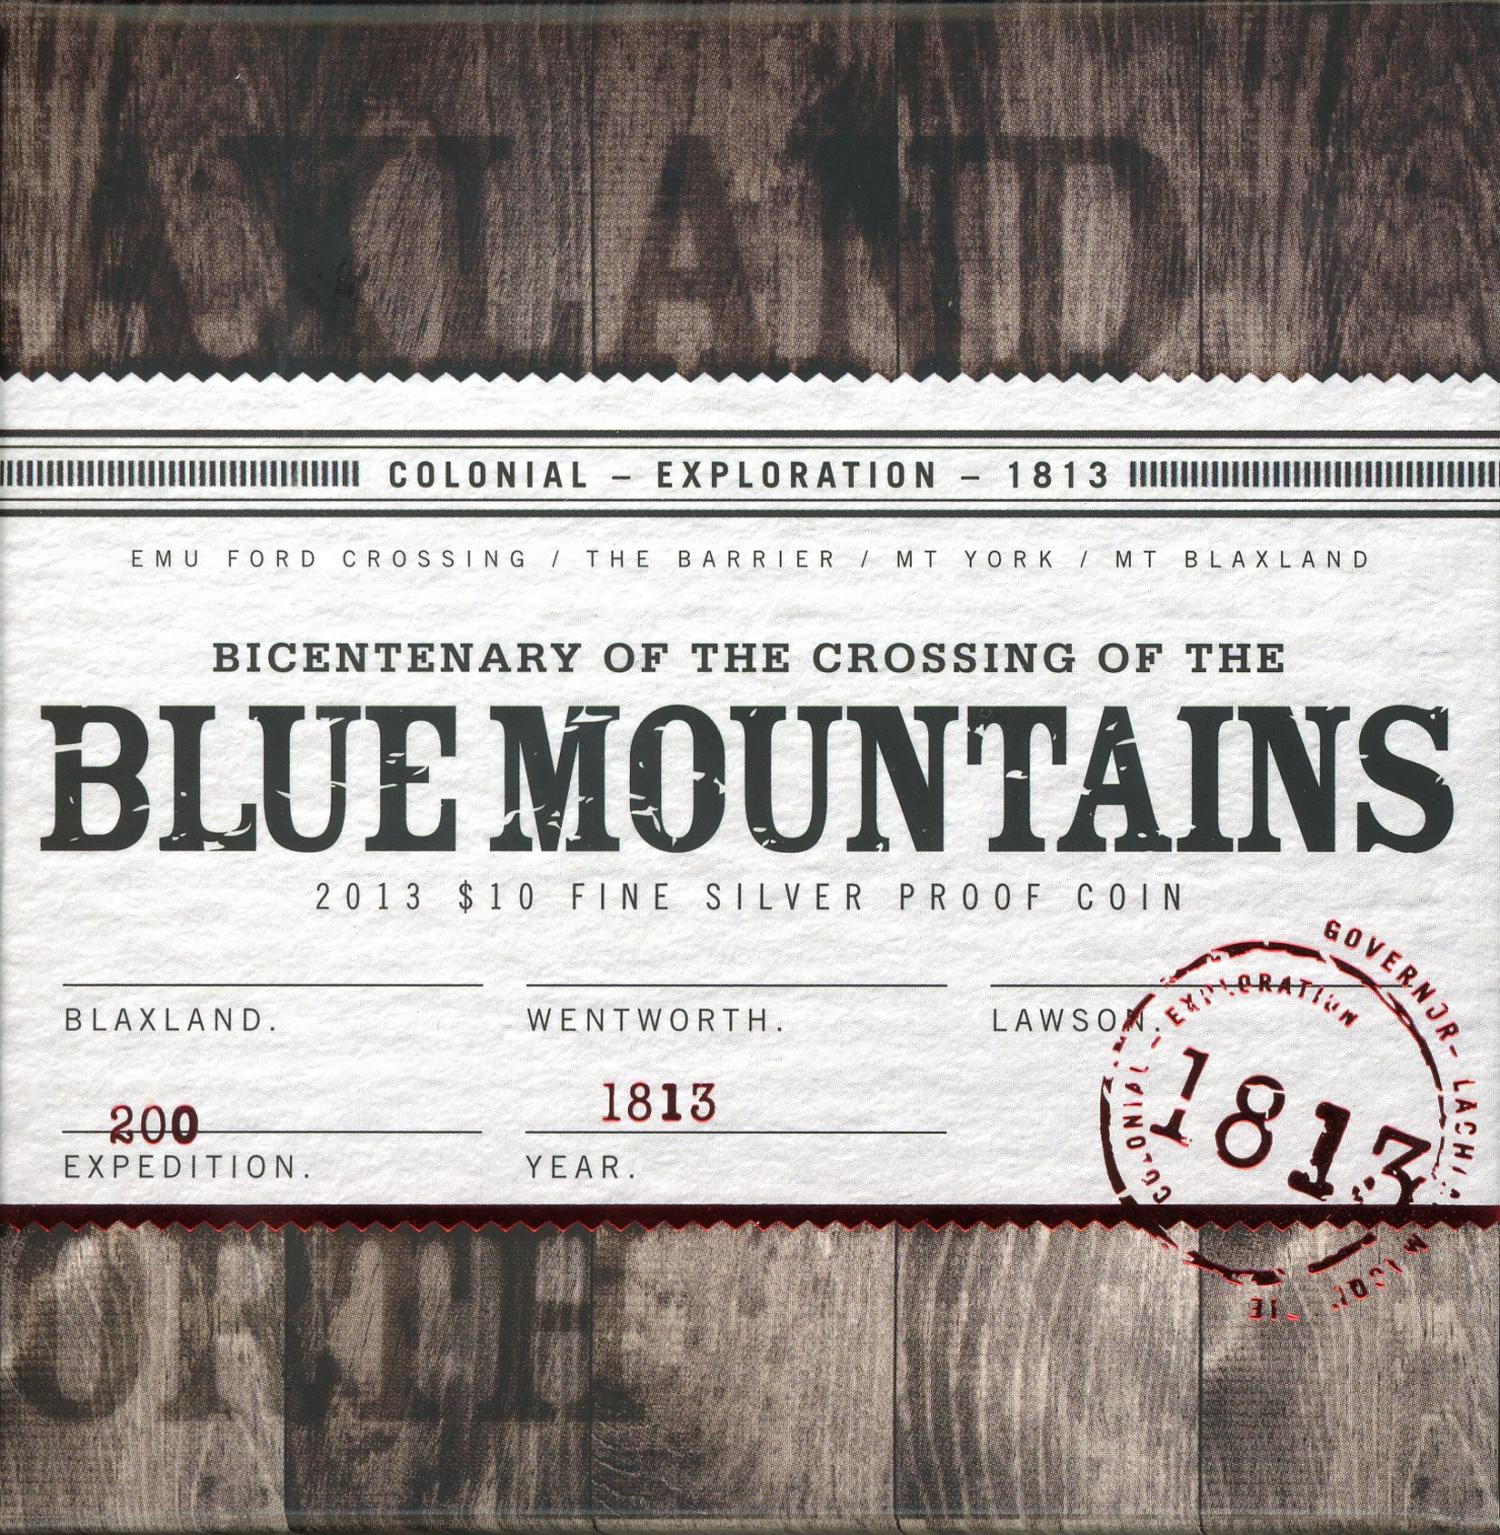 Thumbnail for 2013 Bi-Centenary of the Crossing of the Blue Mountains $10 Silver Proof Coin